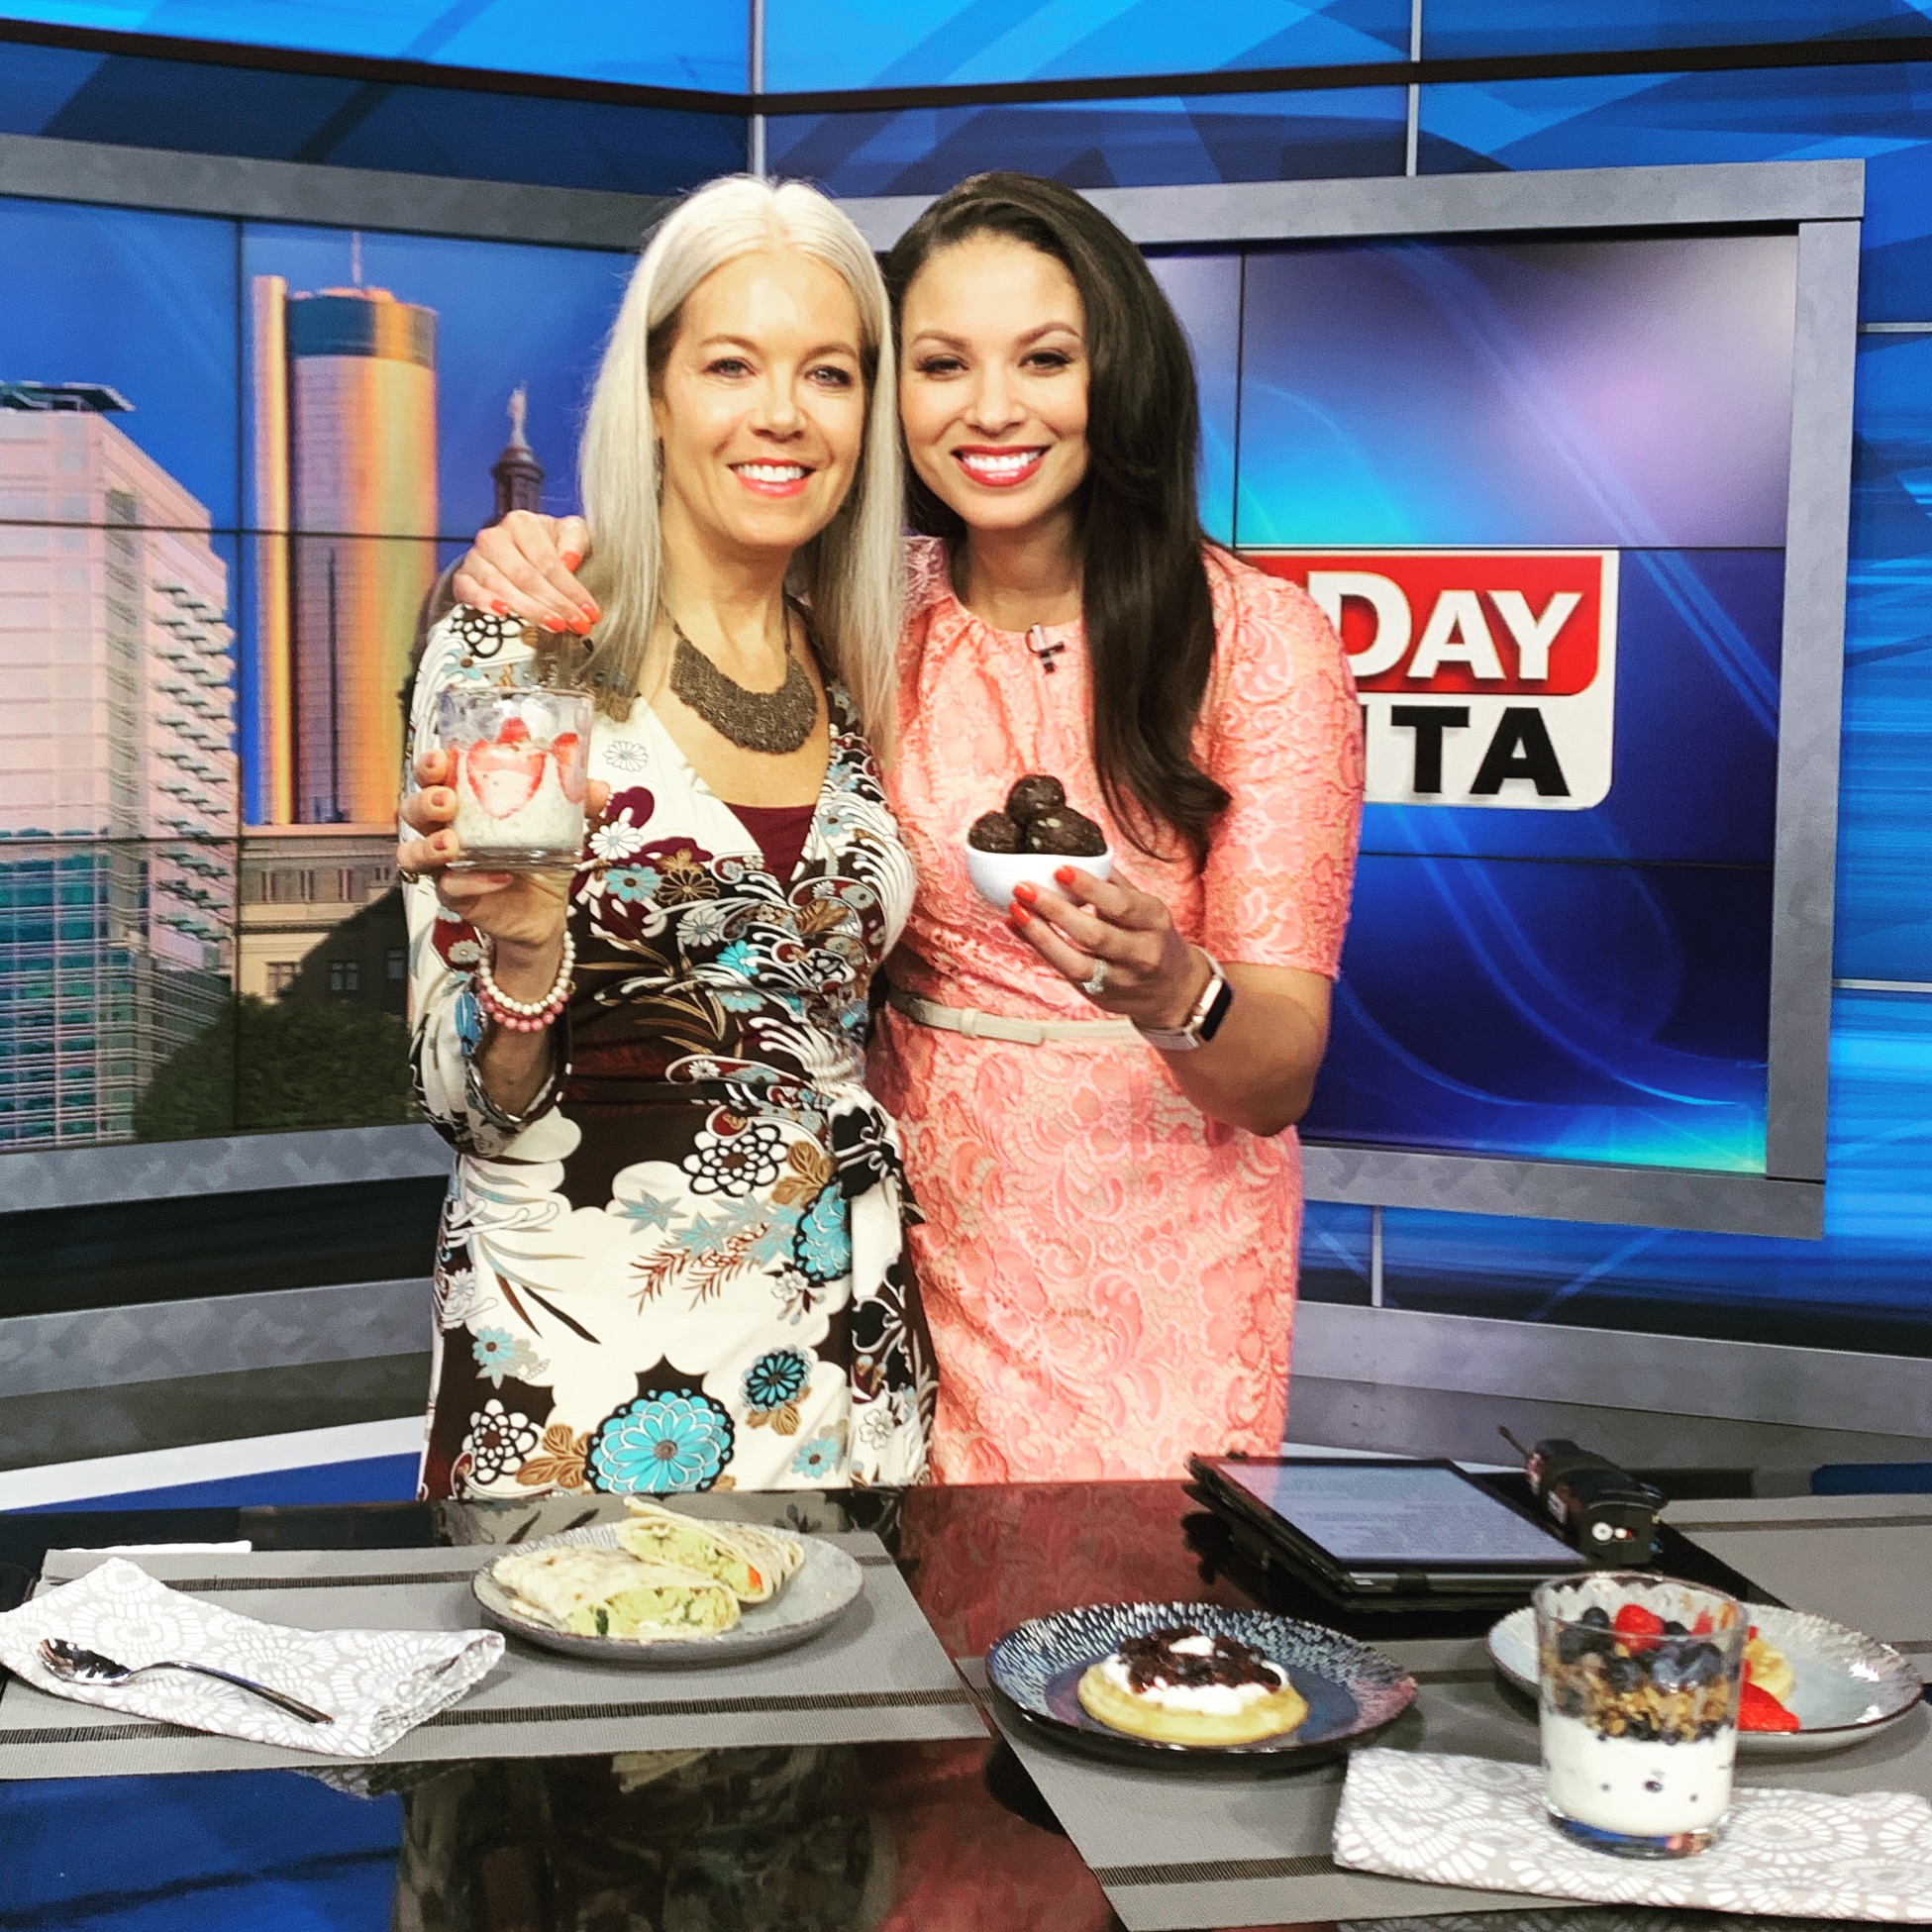 Talking about healthy breakfast options for the kiddo's with Aylse Eady on Good Morning Atlanta Fox 5/WAGA this morning!